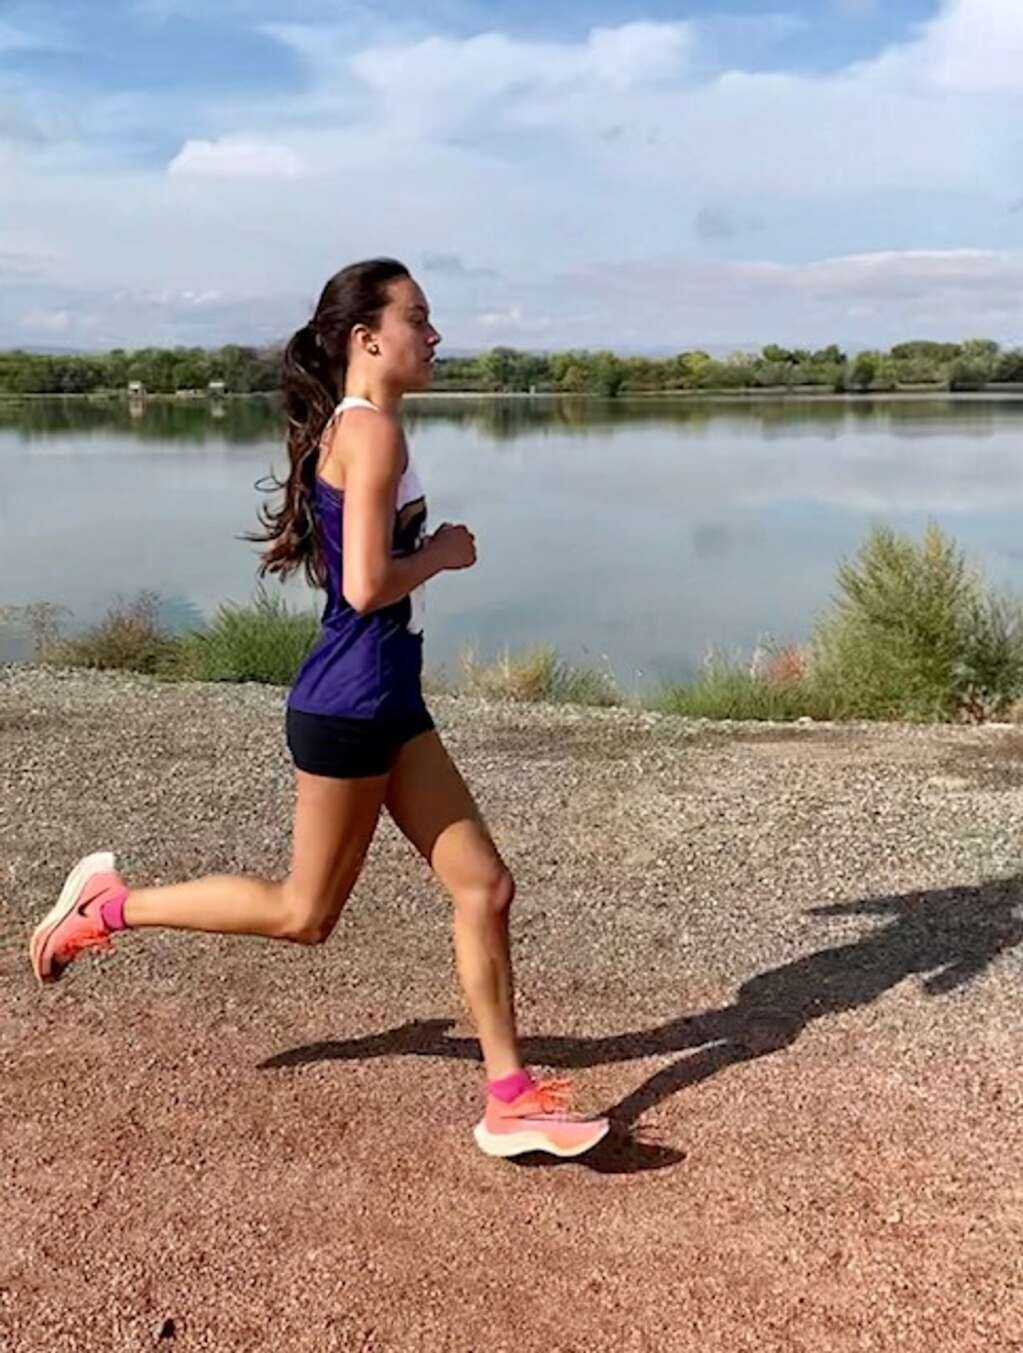 Basalt High School junior Ava Lane competes at a cross country meet on Friday, Oct. 1, 2021, hosted by Delta. Courtesy photo.